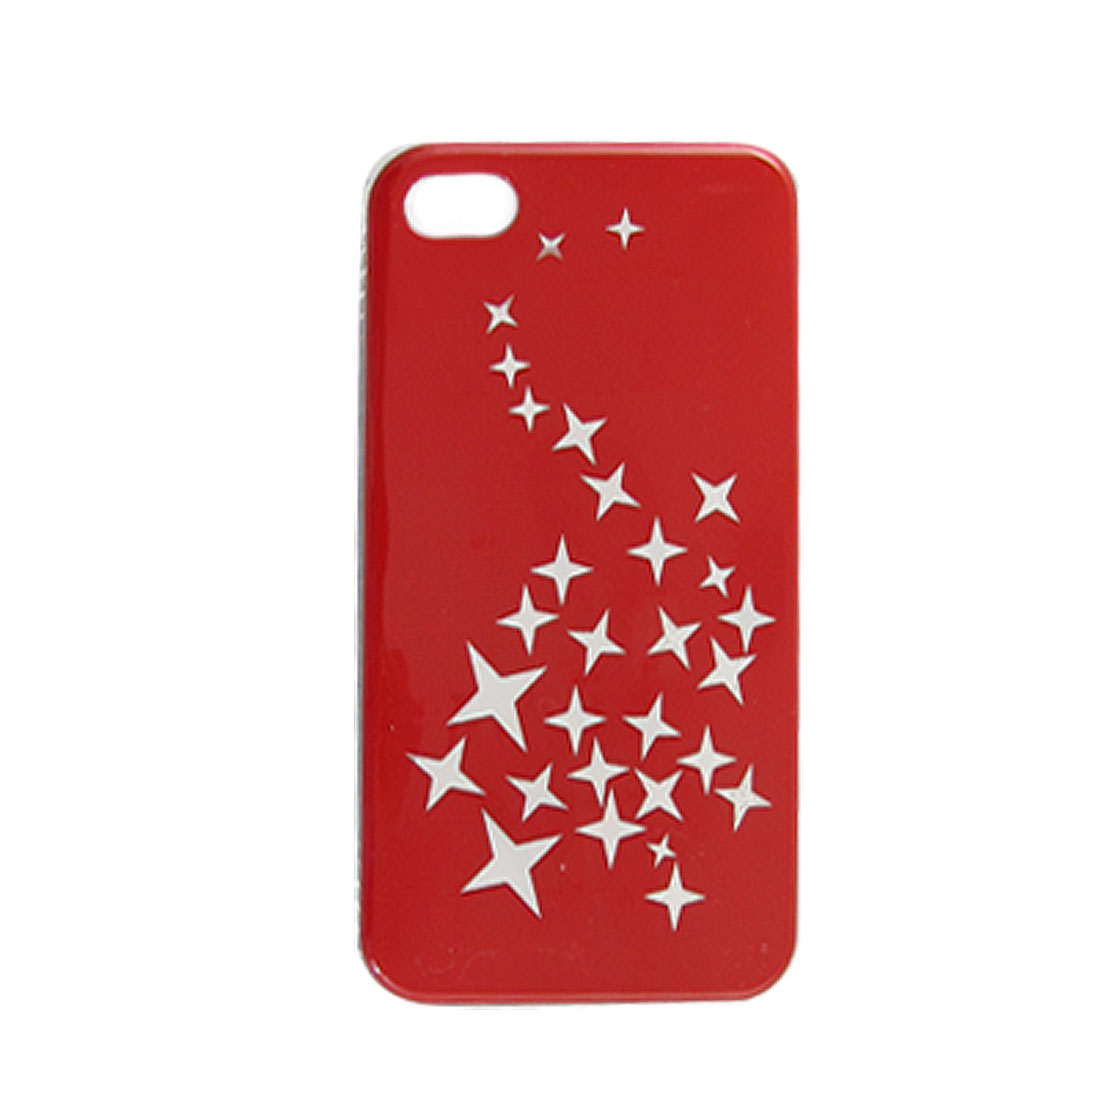 Unique Bargains IMD Stars Pattern Nonslip Side Back Case Protector for iPhone 4 4G 4S